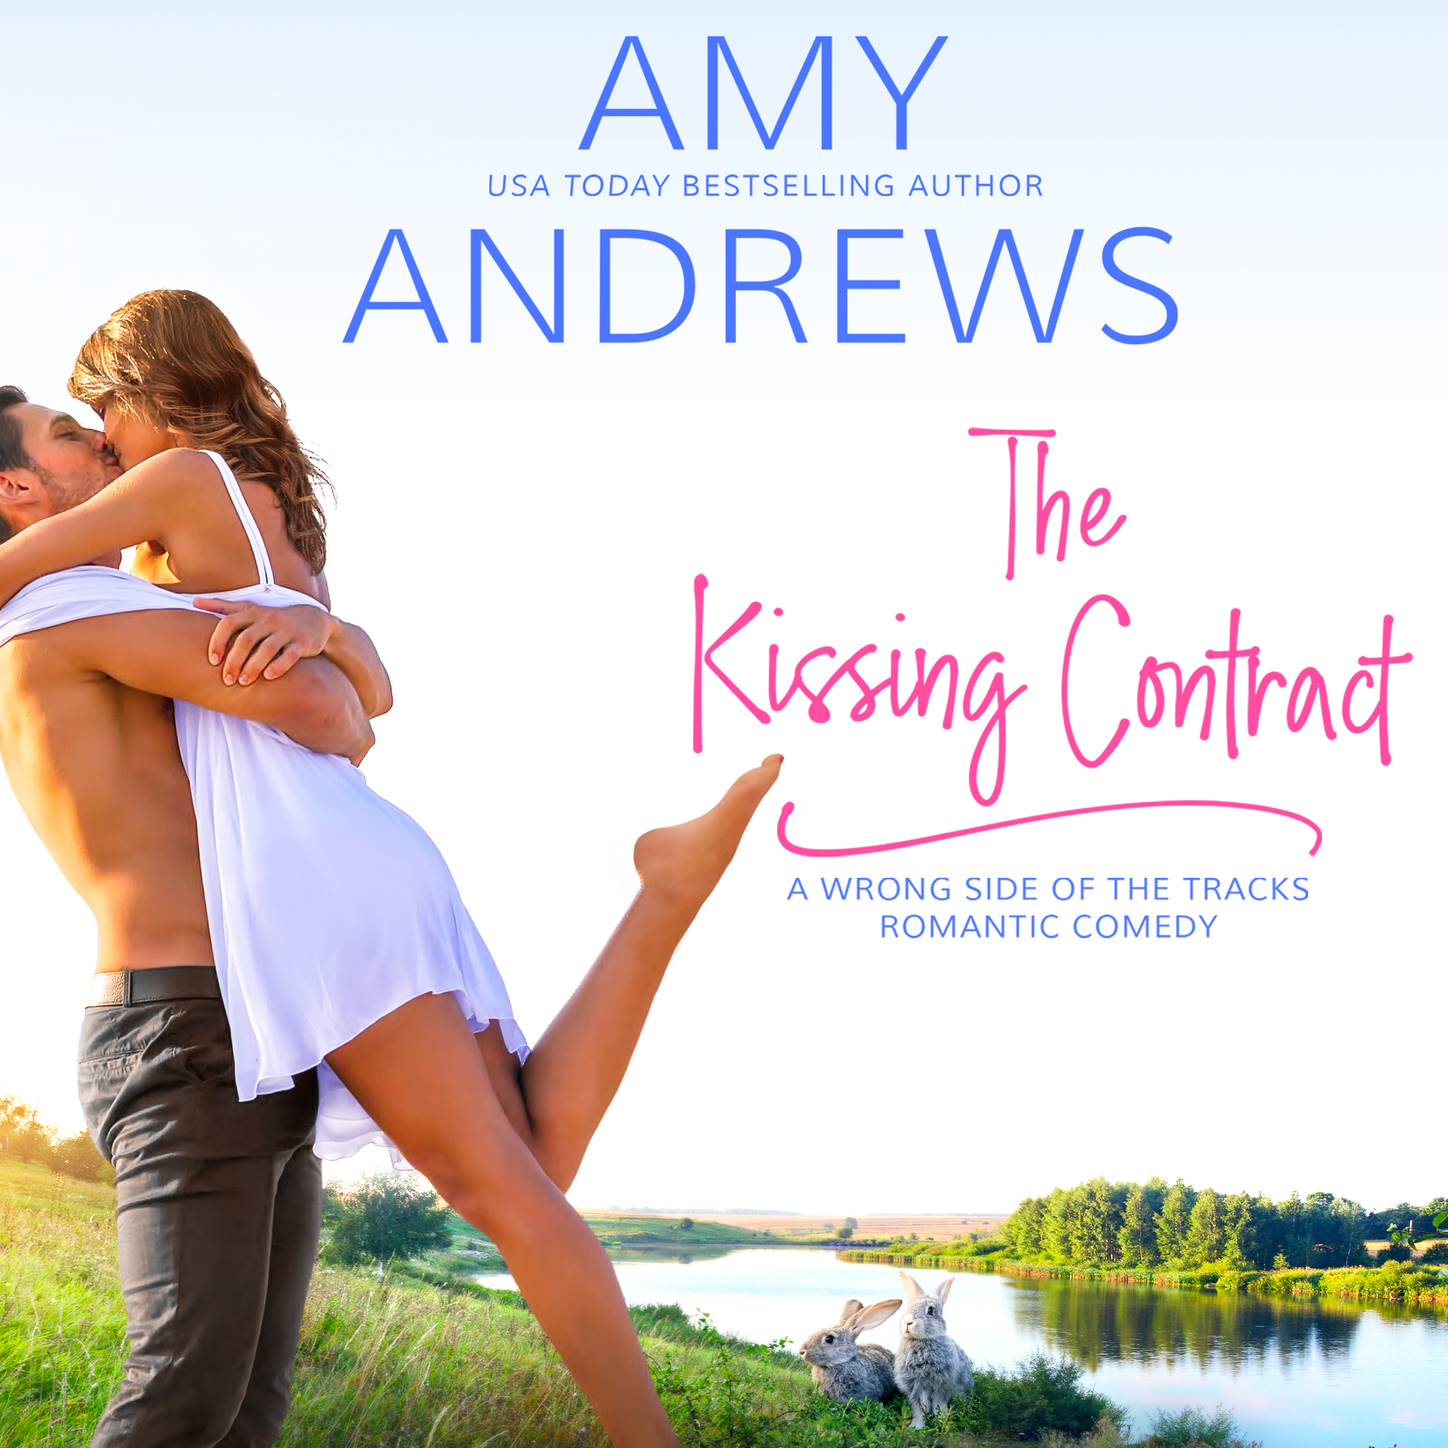 Amy Andrews The Kissing Contract (Unabridged) цена 2017